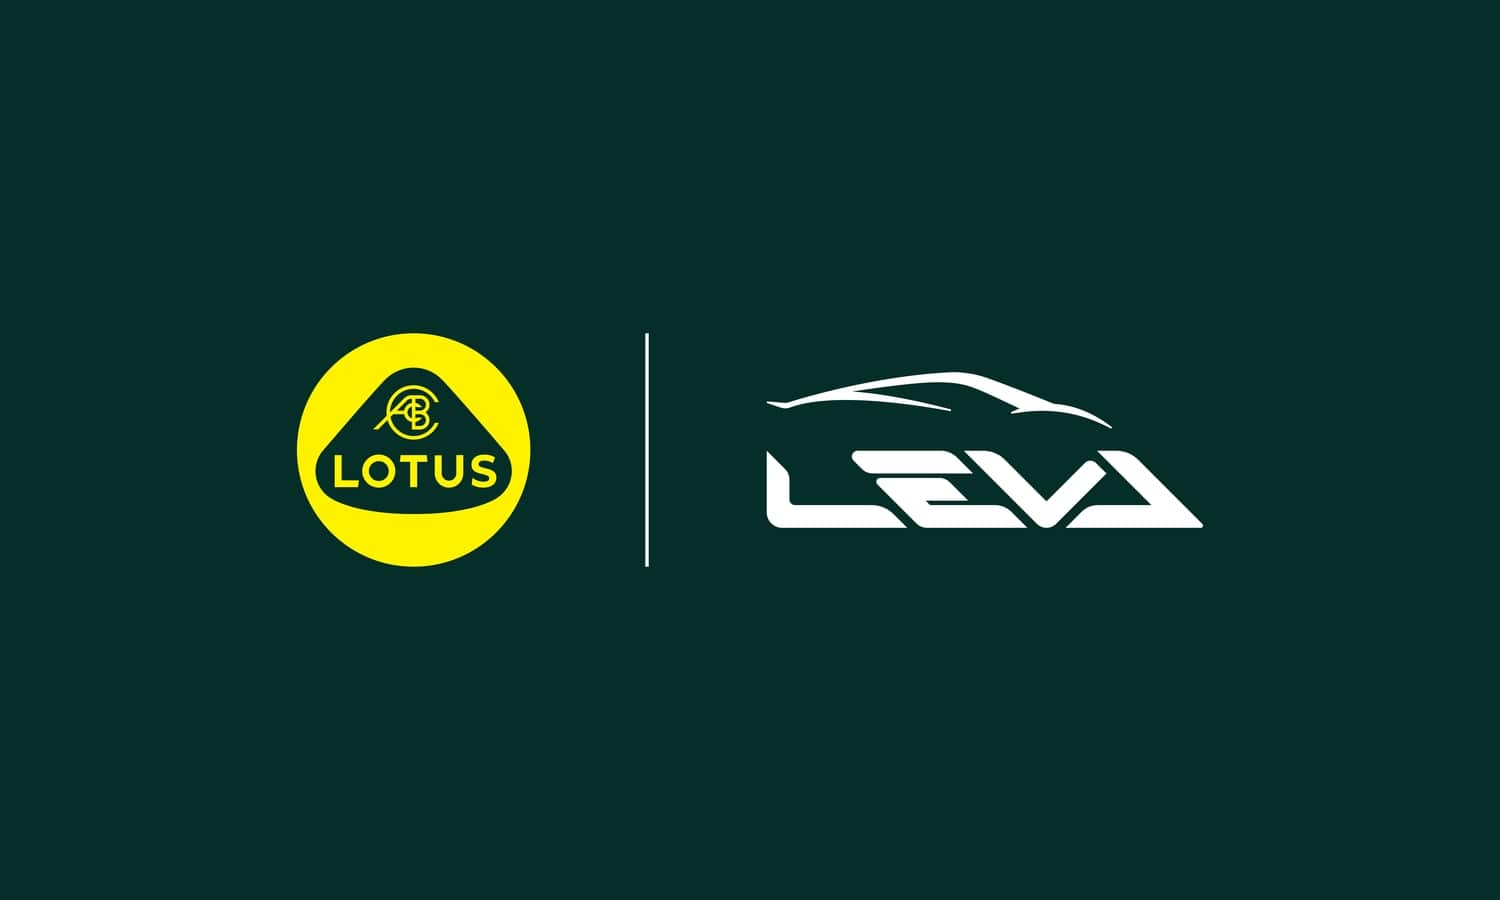 Lotus Cars - Lightweight Electric Vehicle Architecture (LEVA) logos